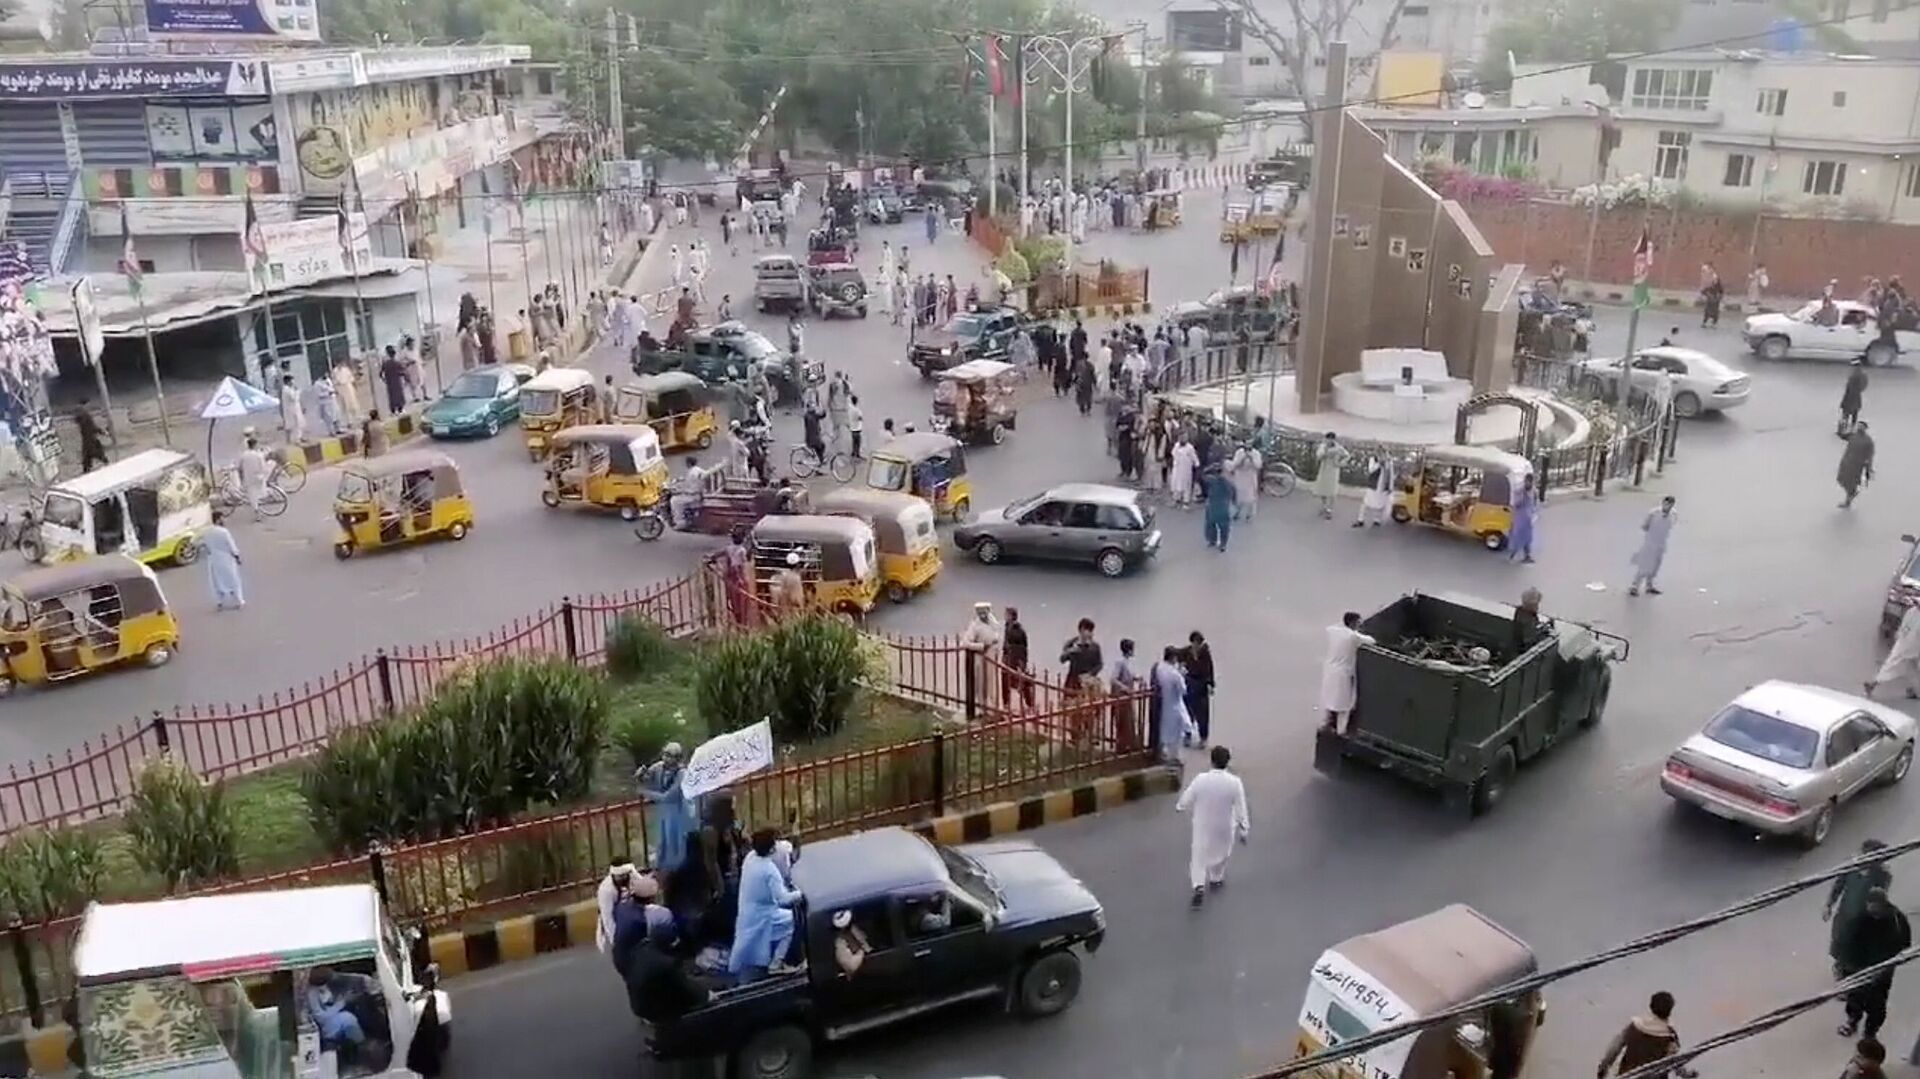 Taliban militants waving a Taliban flag on the back of a pickup truck drive past a crowded street at Pashtunistan Square area in Jalalabad, Afghanistan in this still image taken from social media video uploaded on August 15, 2021. Social media website/via REUTERS THIS IMAGE HAS BEEN SUPPLIED BY A THIRD PARTY. - Sputnik International, 1920, 07.09.2021